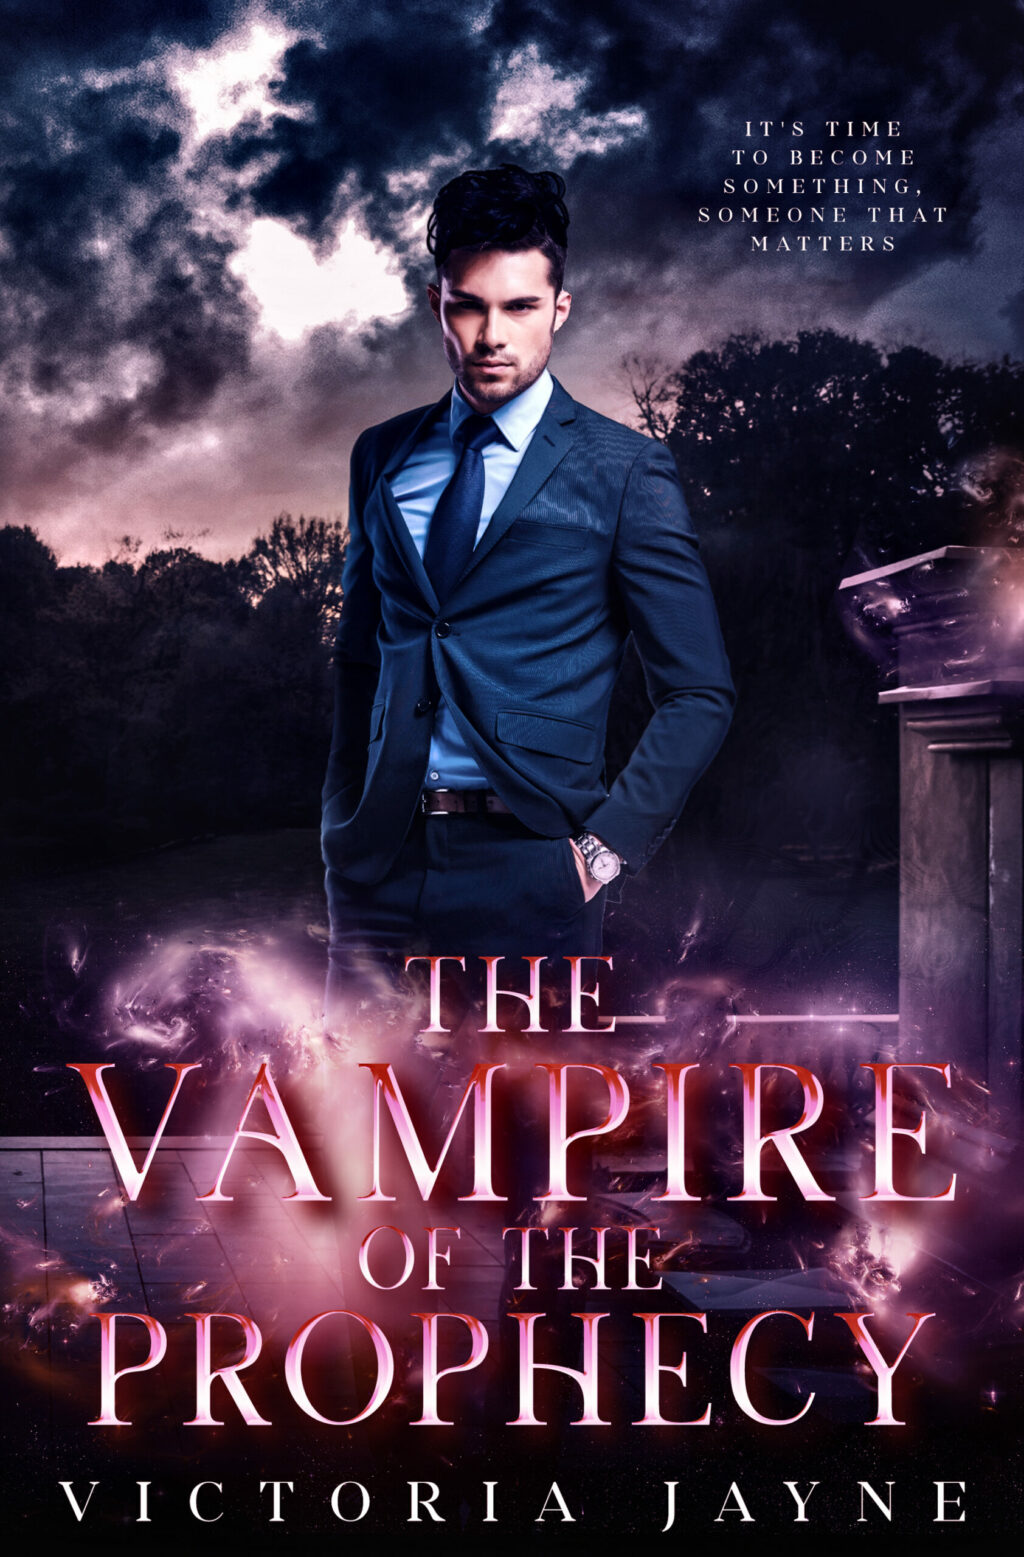 The Vampire of the Prophecy by Victoria Jayne